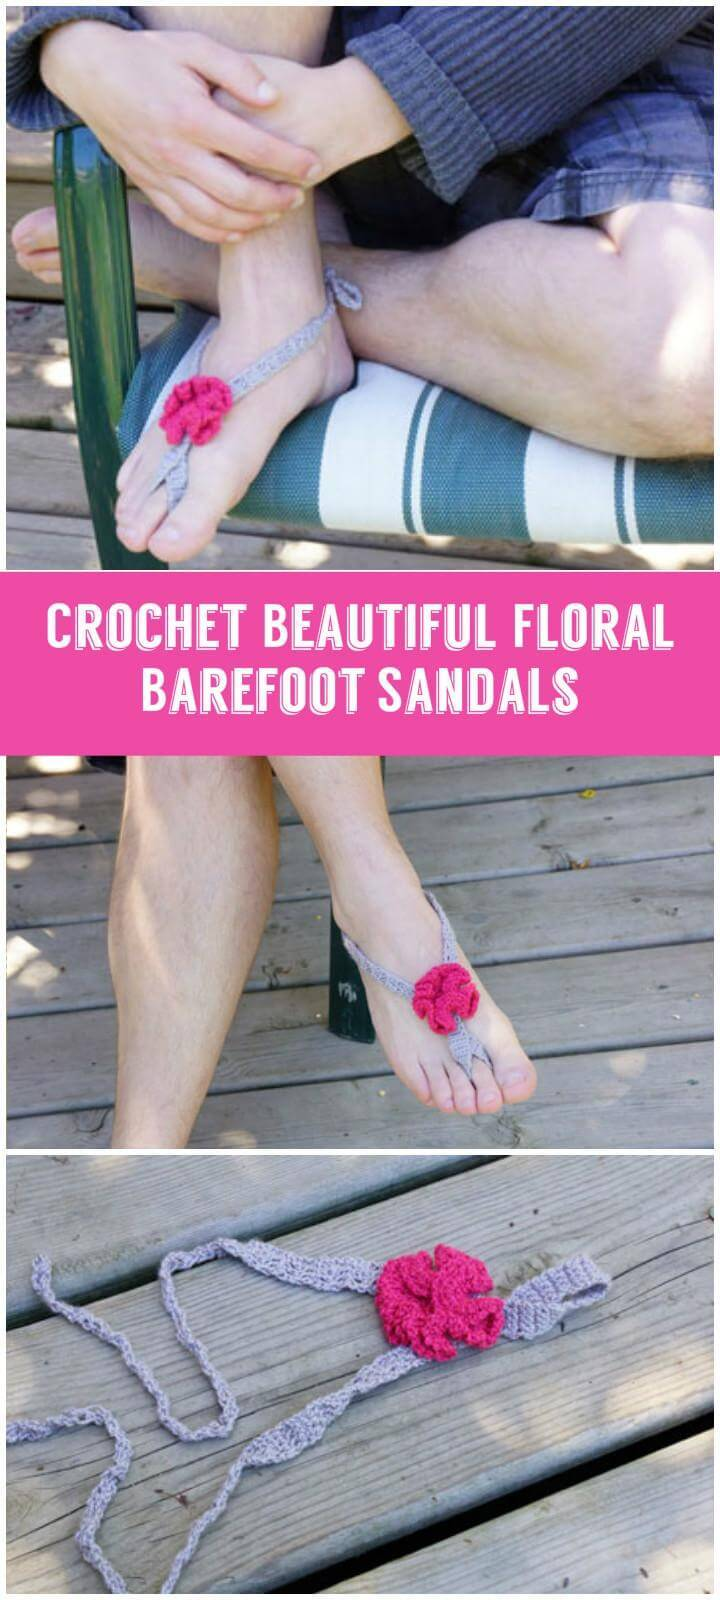 Crochet Beautiful Floral Barefoot Sandals